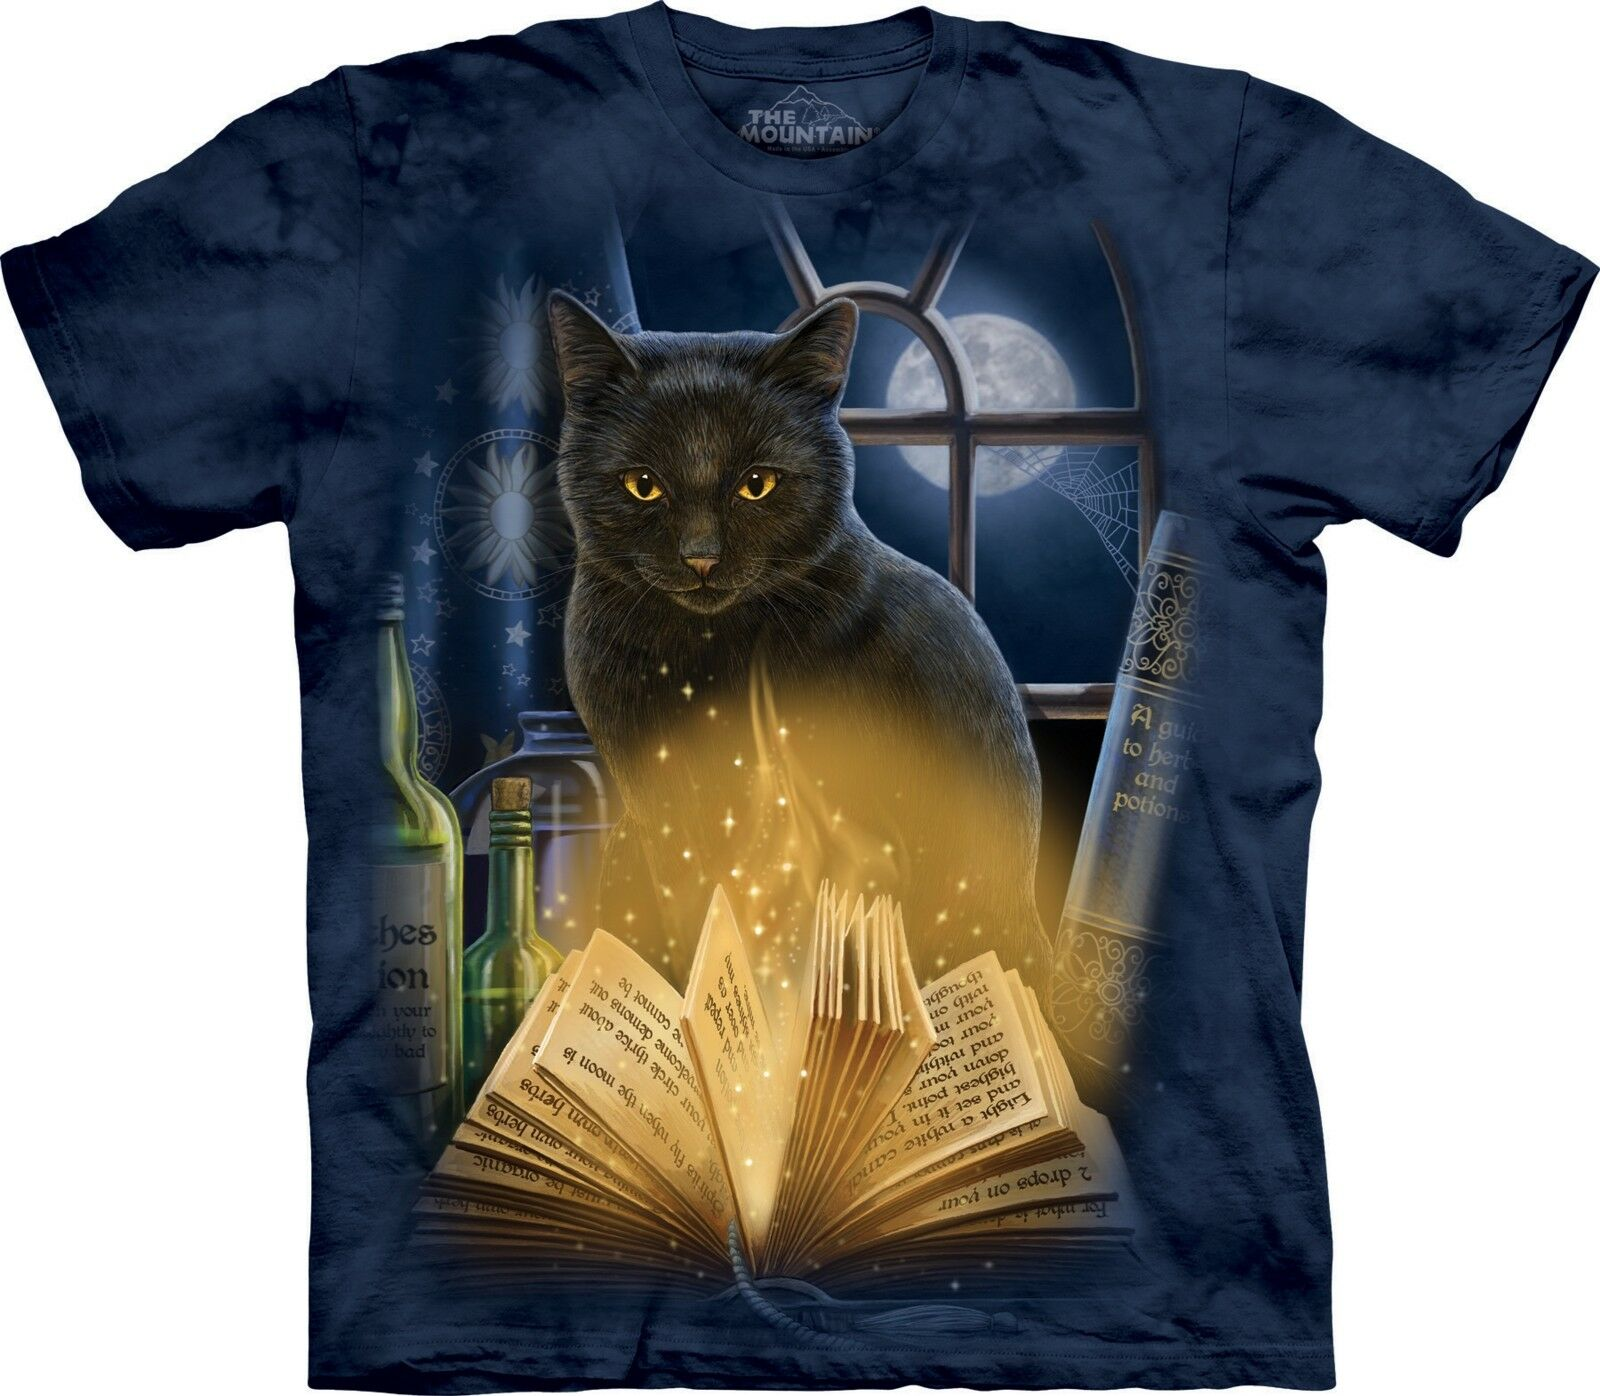 The Mountain Unisex Adult Bewitched Pet T Shirt